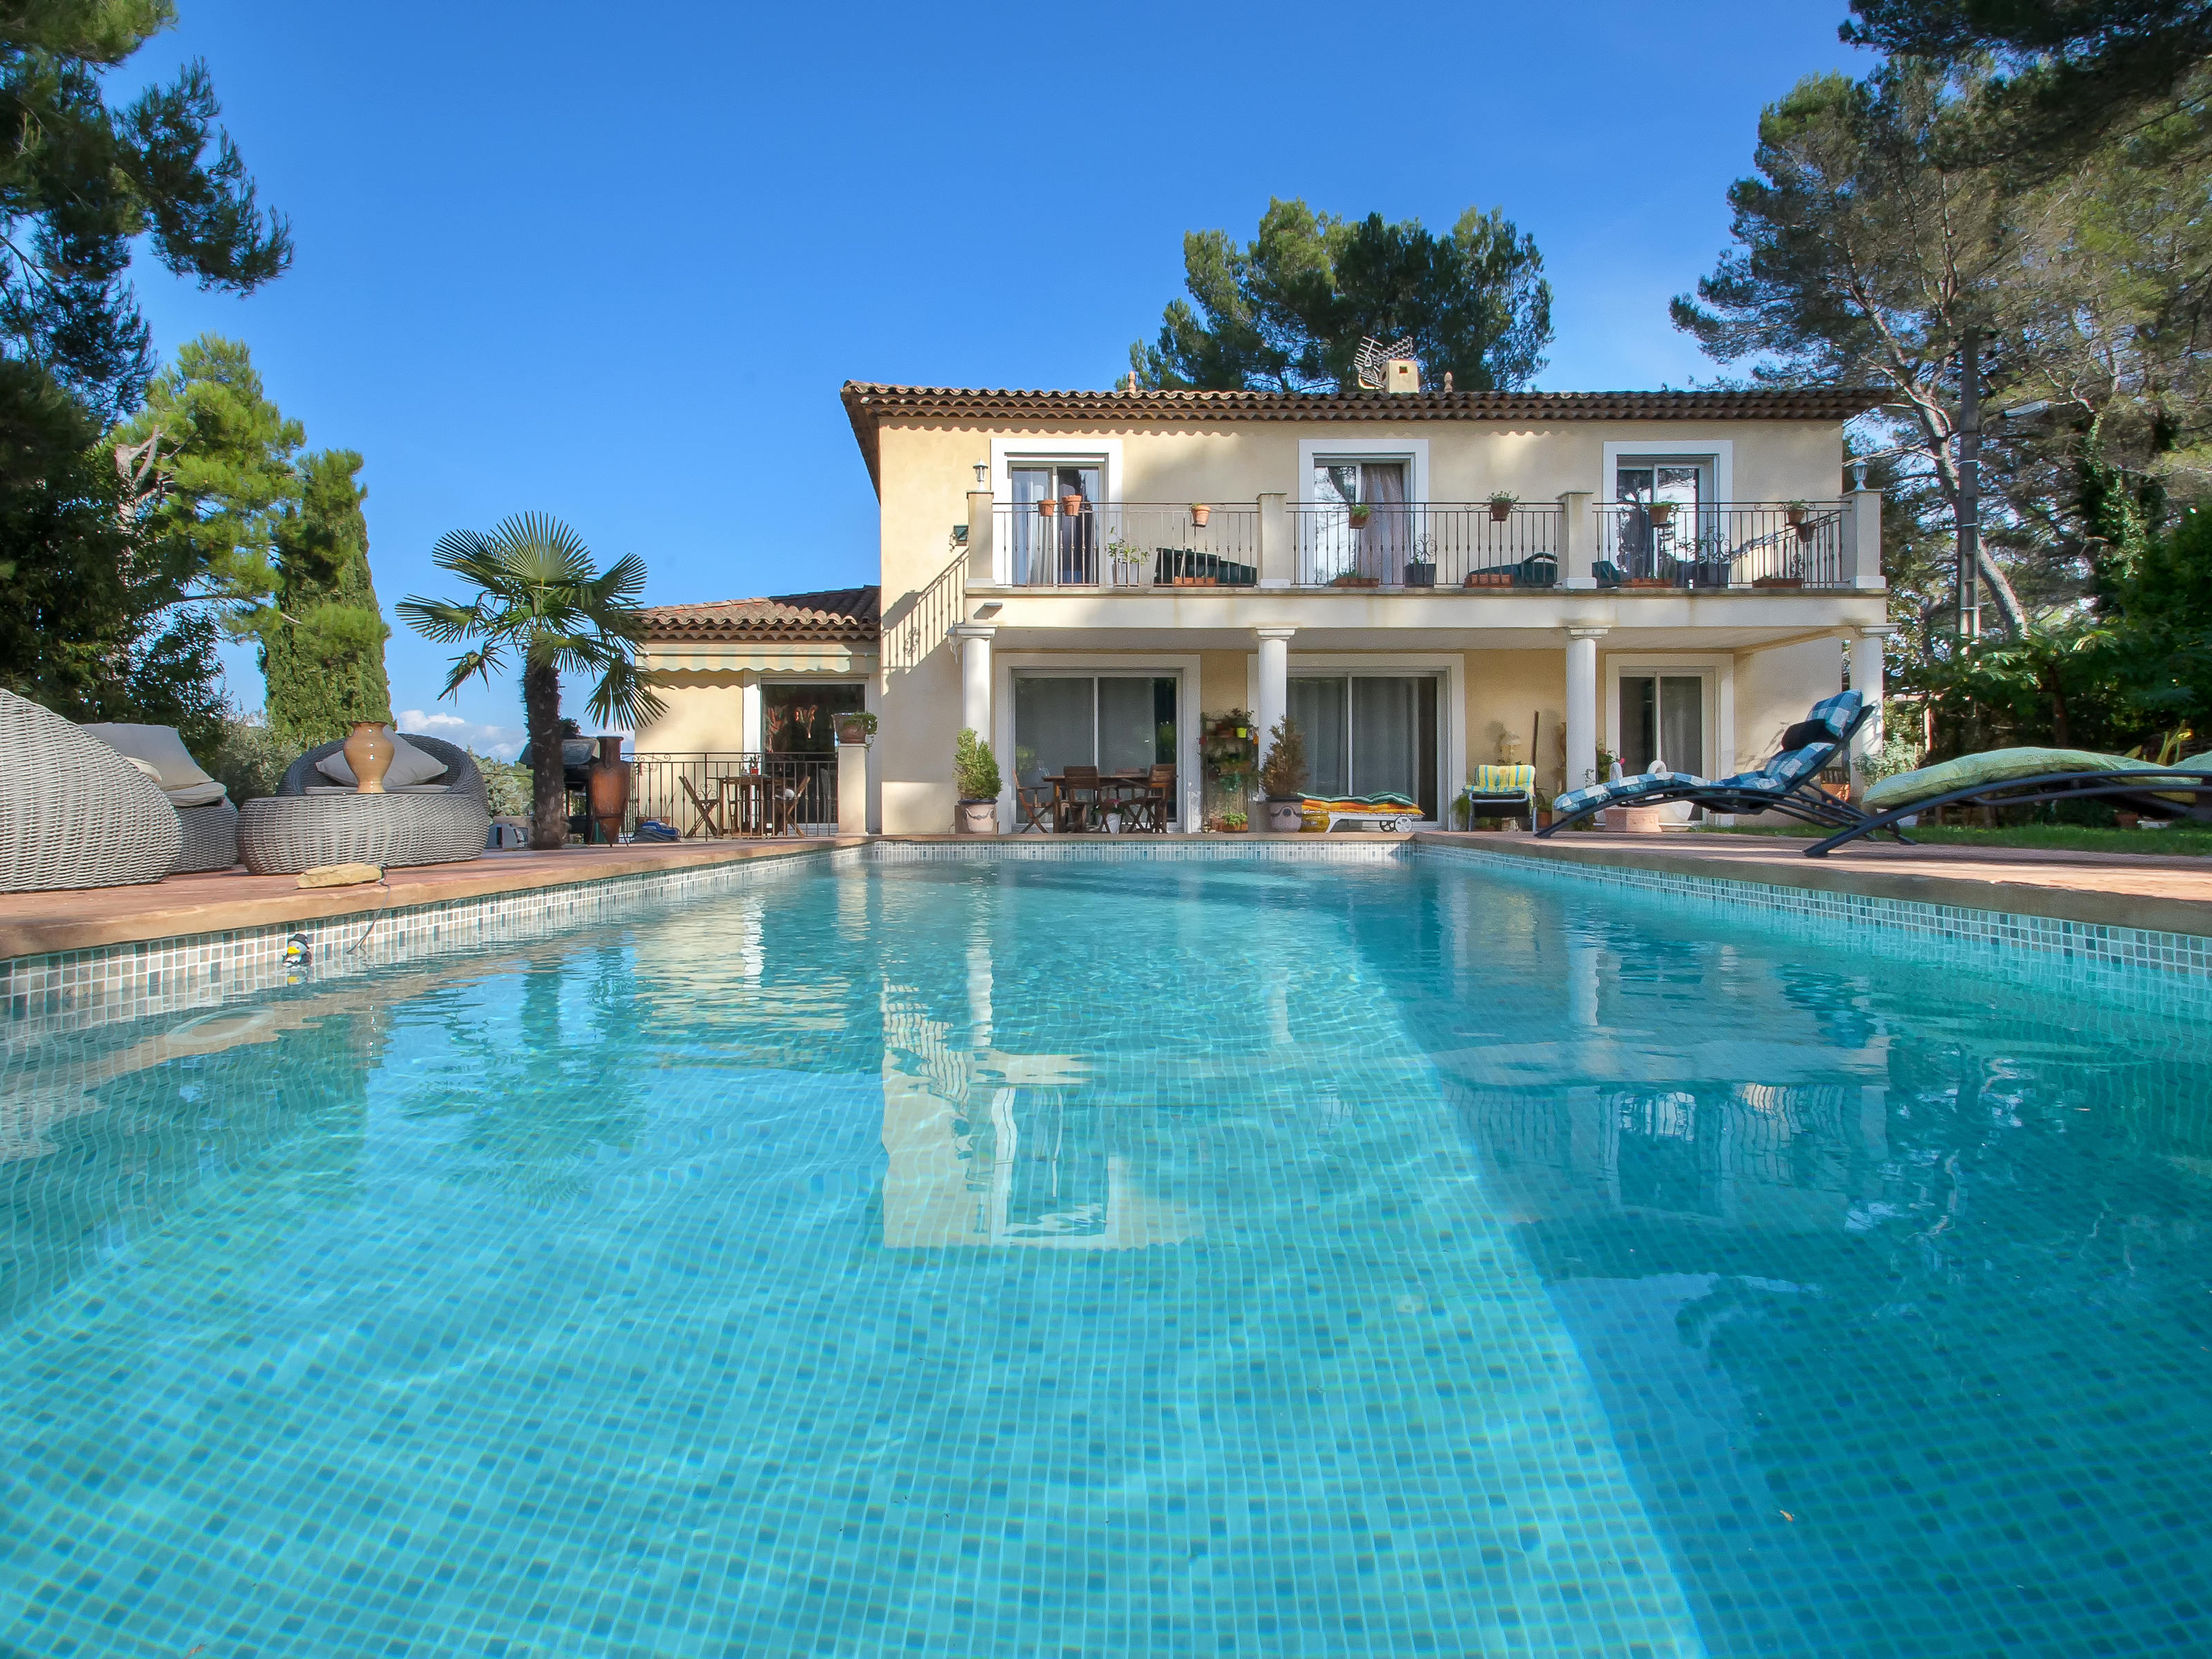 Maison unifamiliale pour l Vente à Gated domain - charming recent villa - close to the golf course Mougins, Provence-Alpes-Cote D'Azur 06250 France